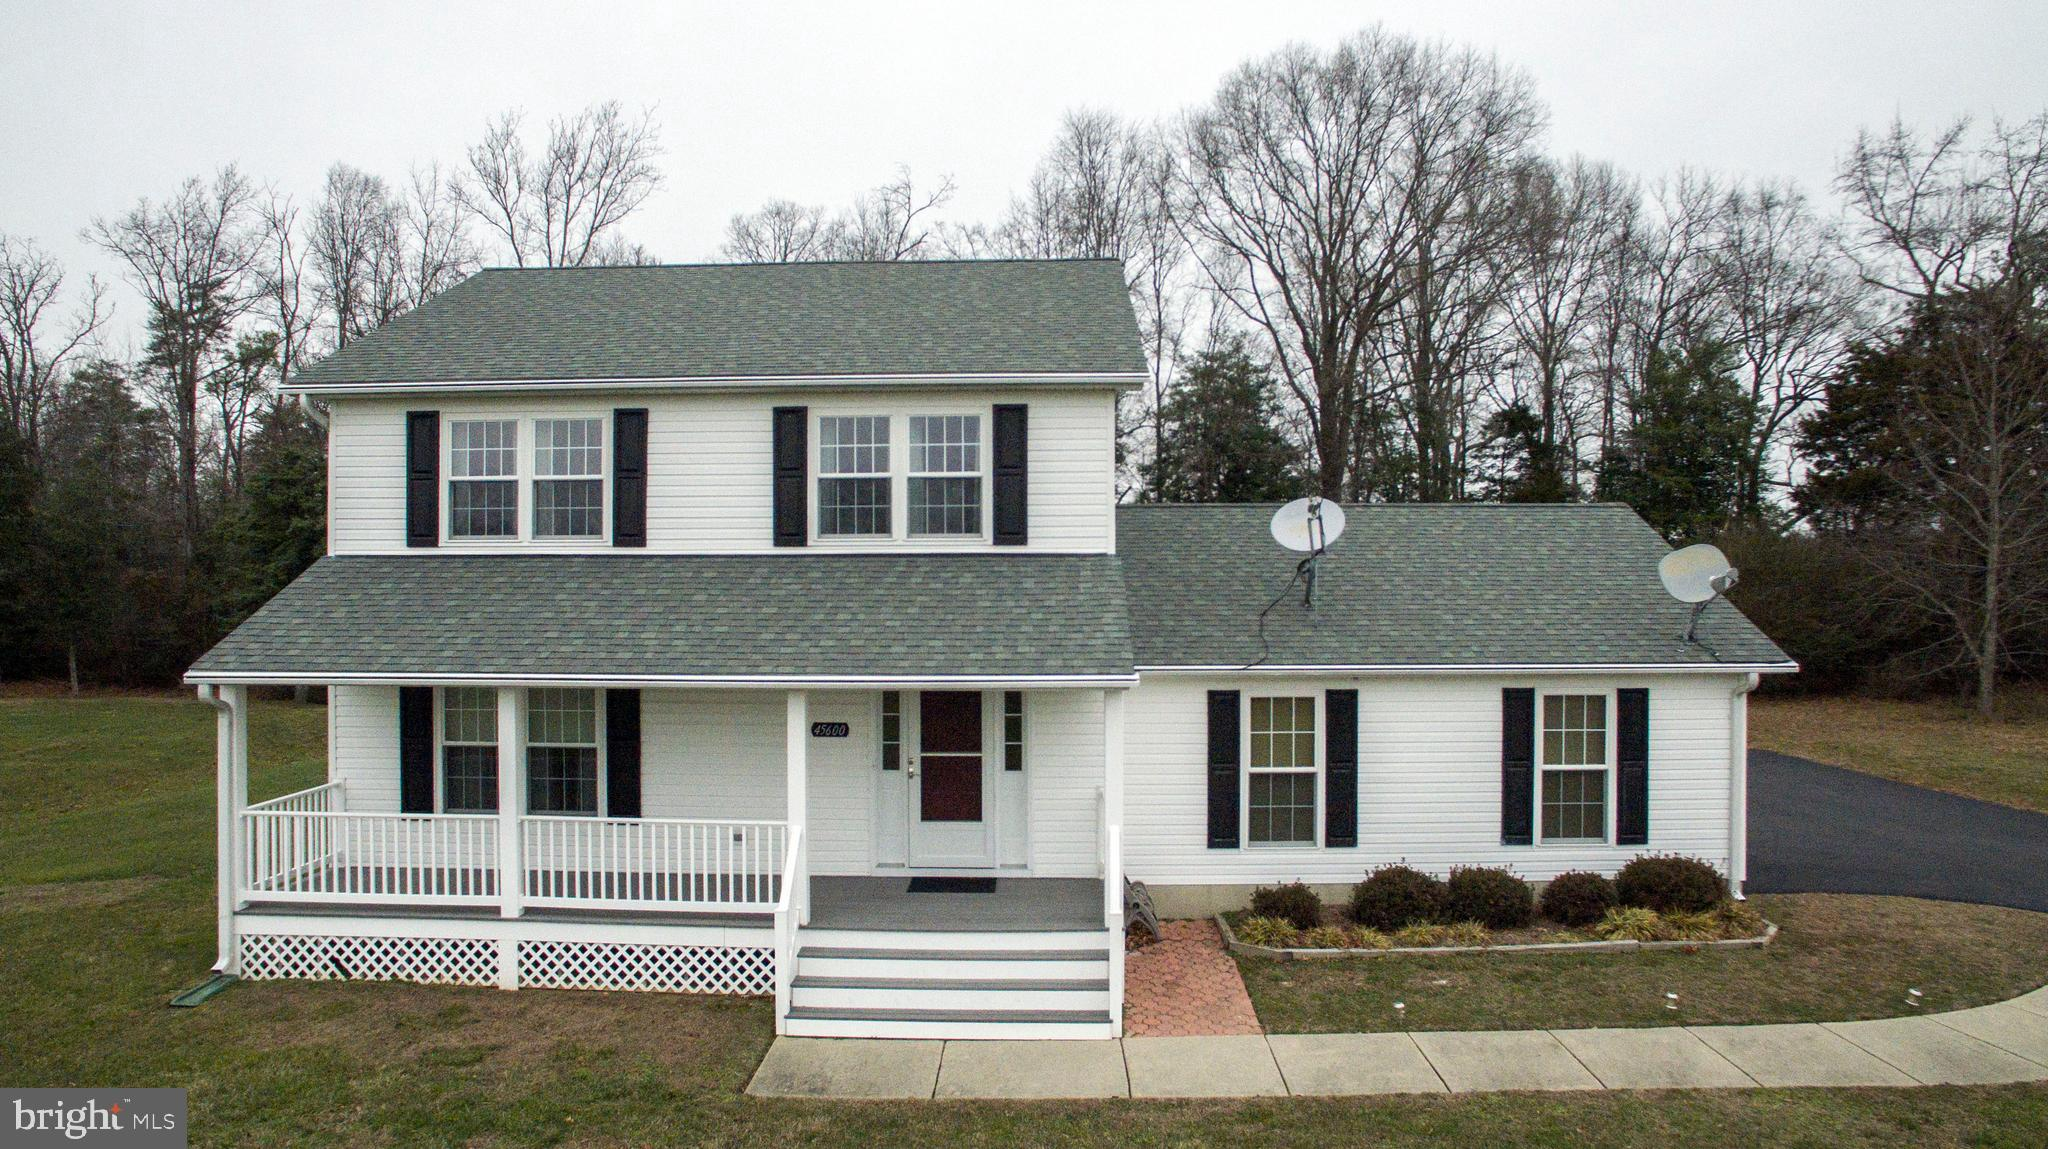 45600 RUTHERFORD BOULEVARD, GREAT MILLS, MD 20634